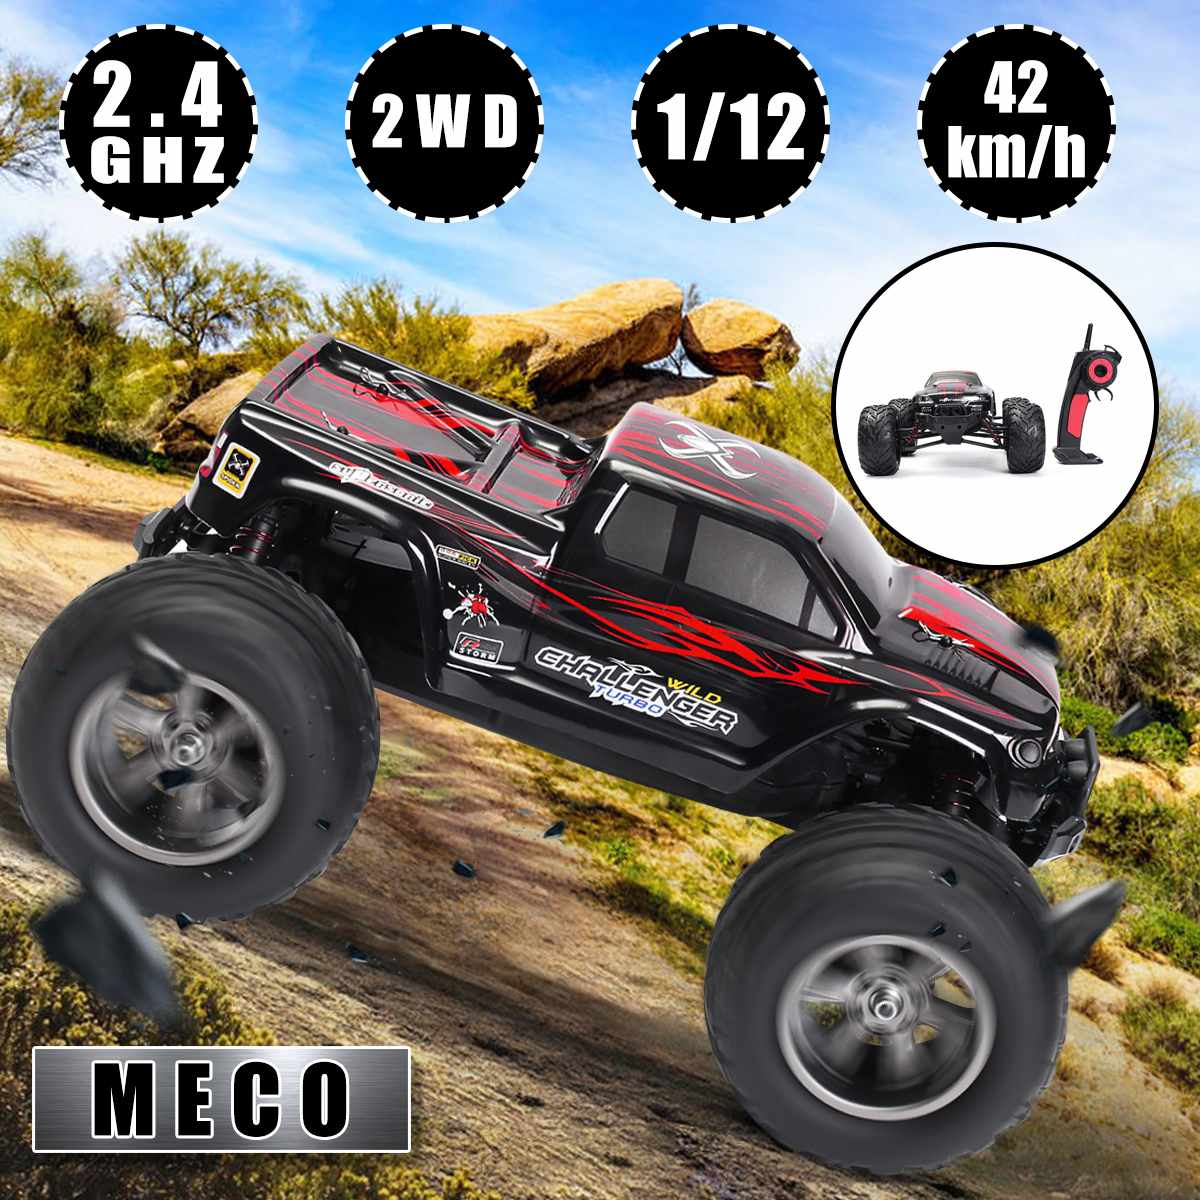 <font><b>1</b></font>:<font><b>12</b></font> <font><b>2</b></font>.4GHz RC Car Kids Power Remote Control Cars Boys Toys Gift High Speed Racing Car Bigfoot Climbing Electric Off Road Truck image